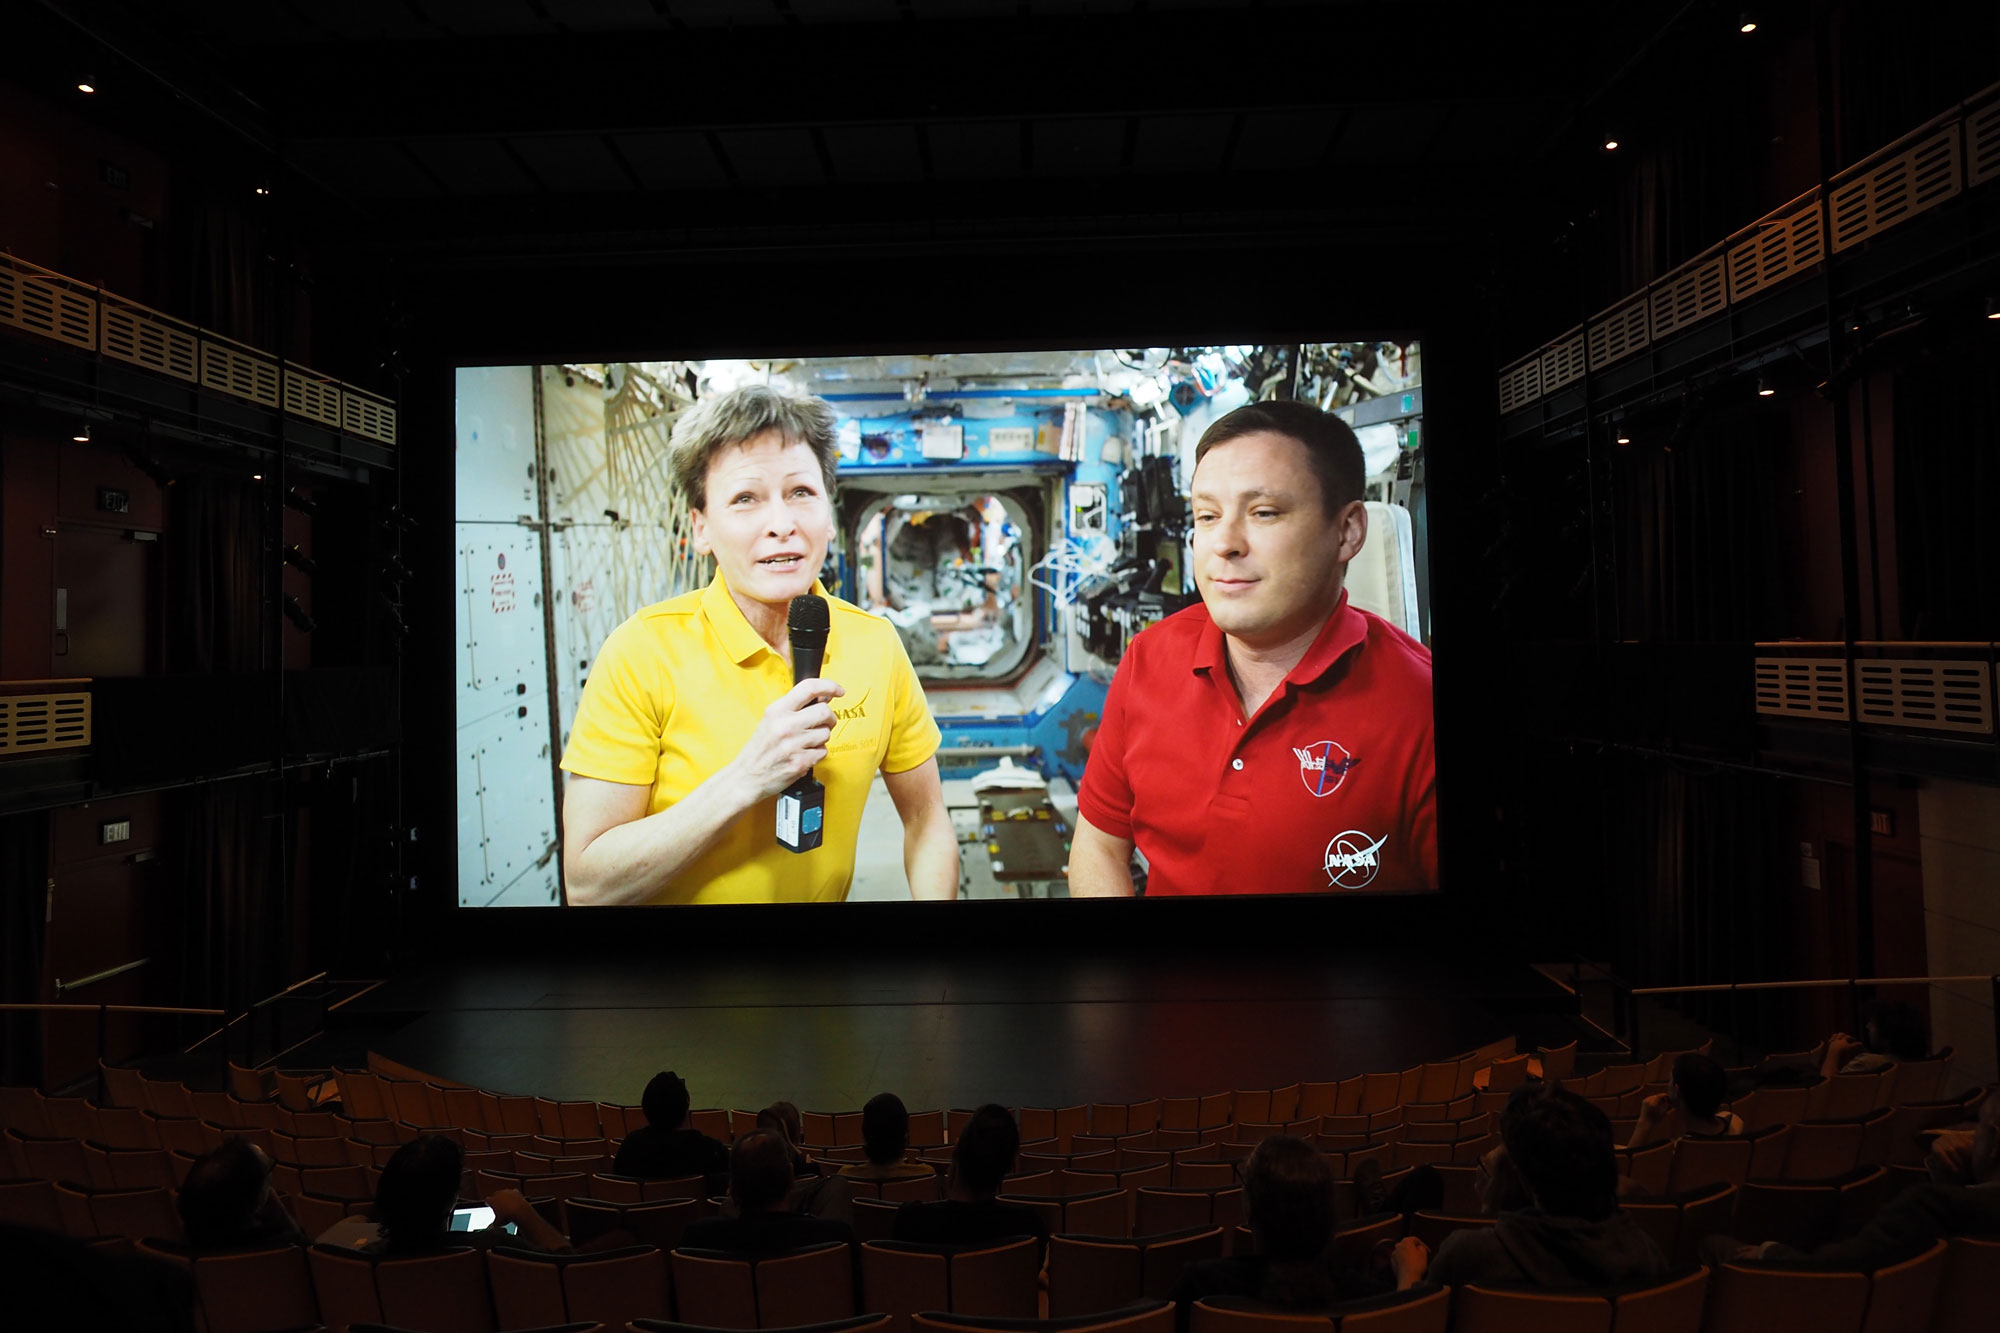 nasa astronauts livestreamed into the theater in 2017